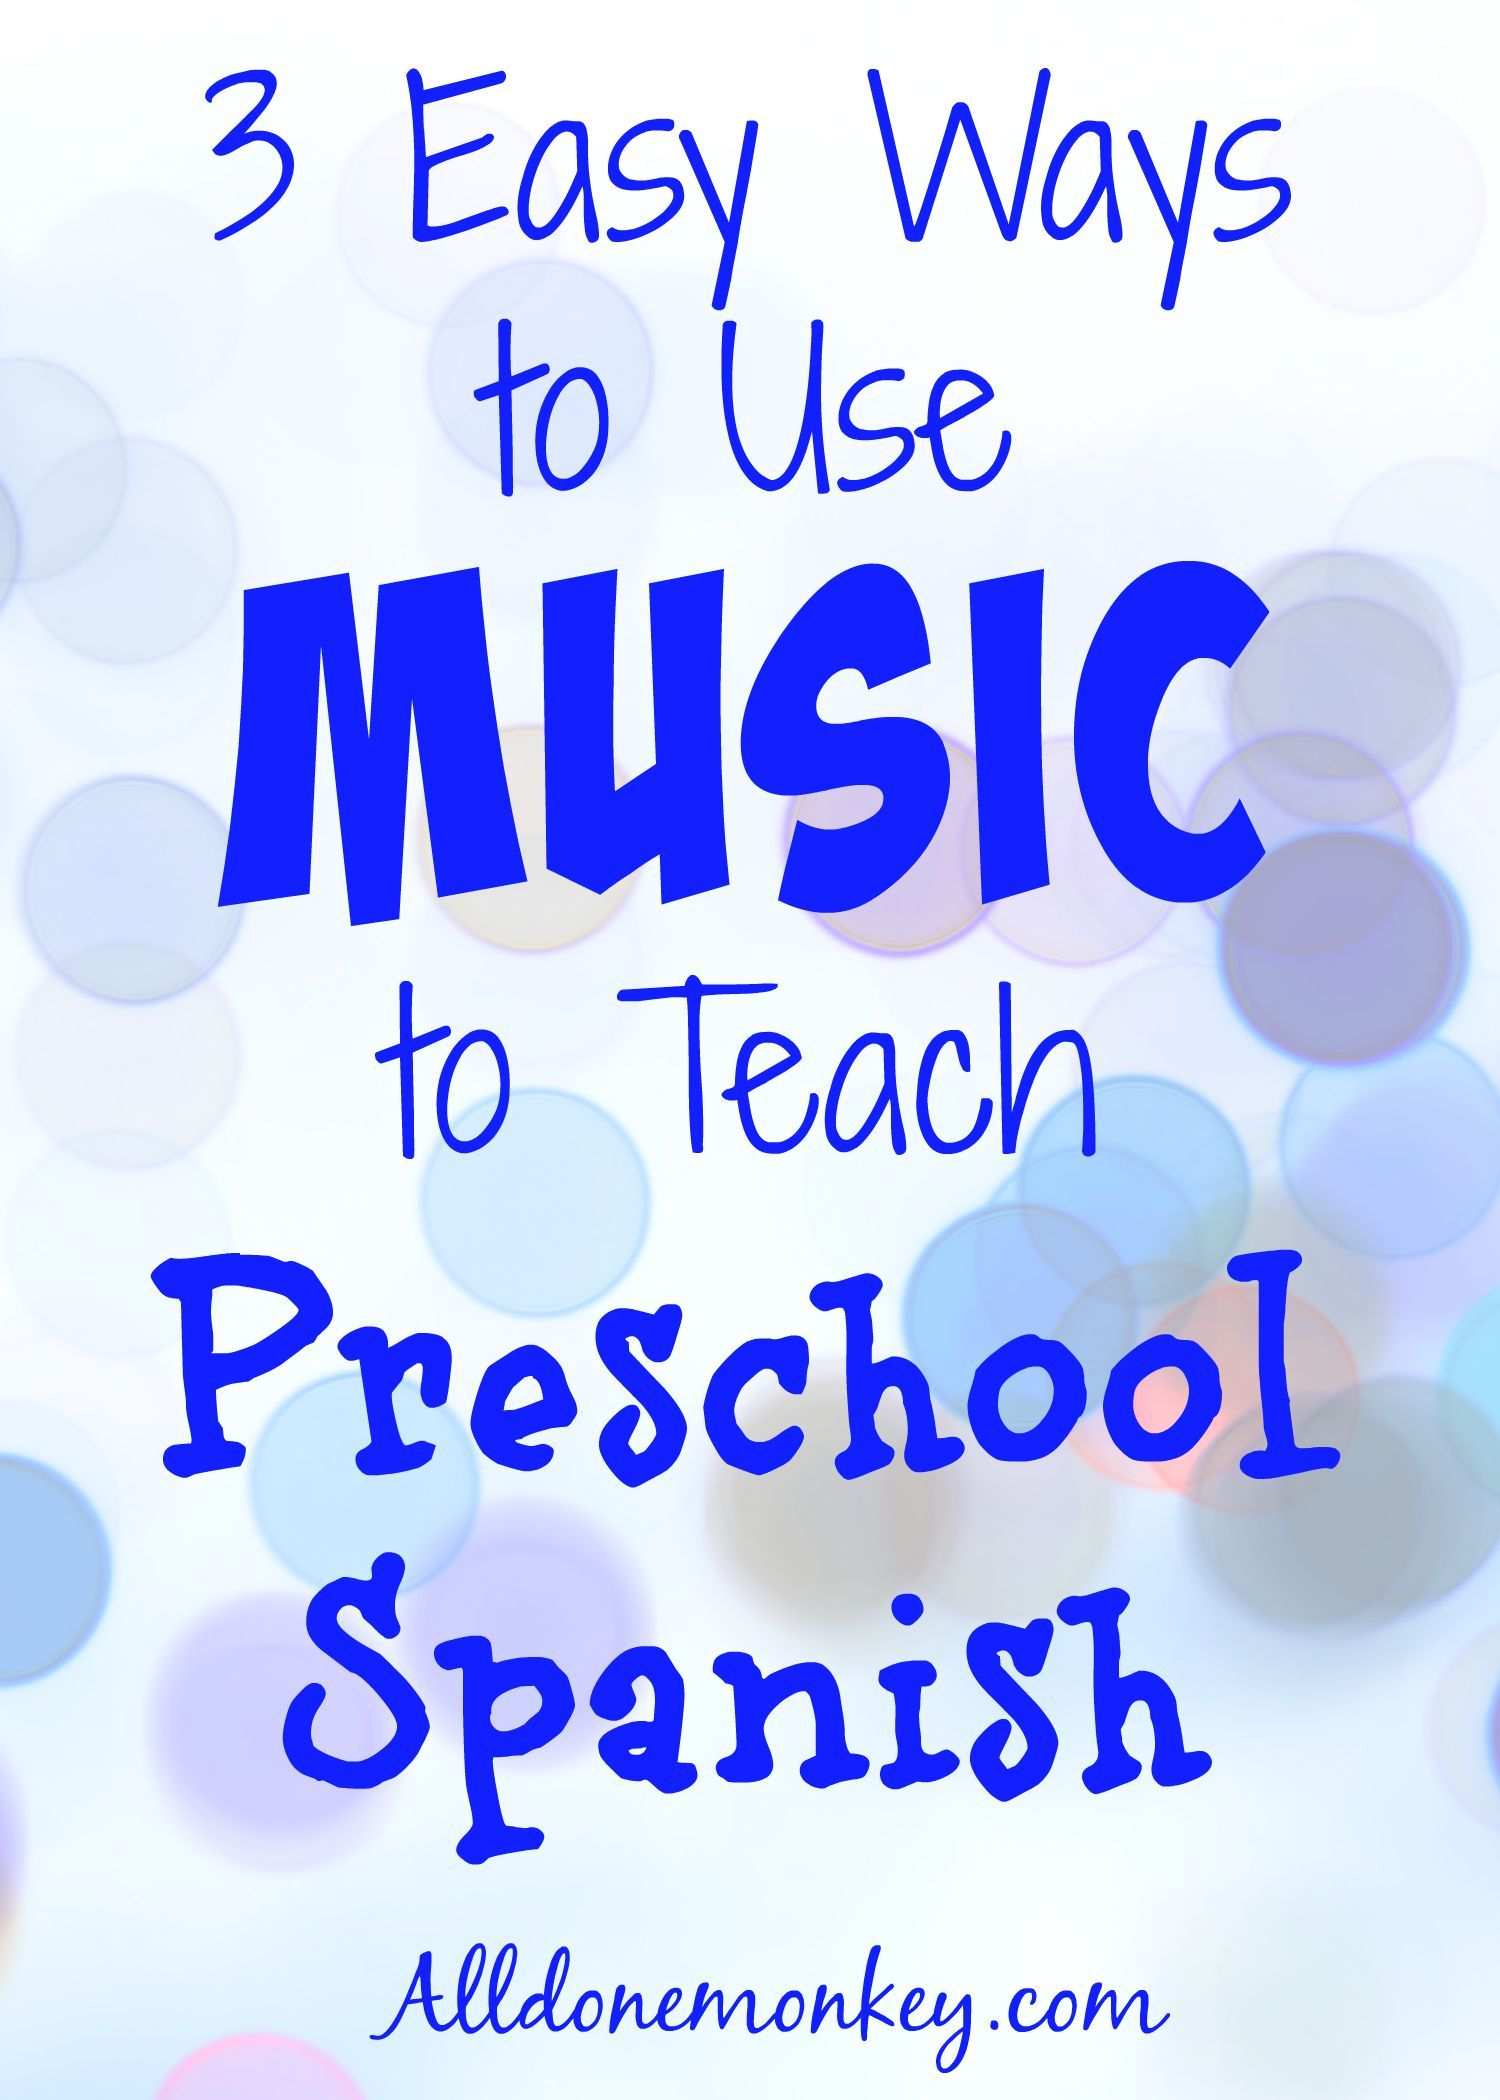 3 Easy Ways To Use Music To Teach Preschool Spanish